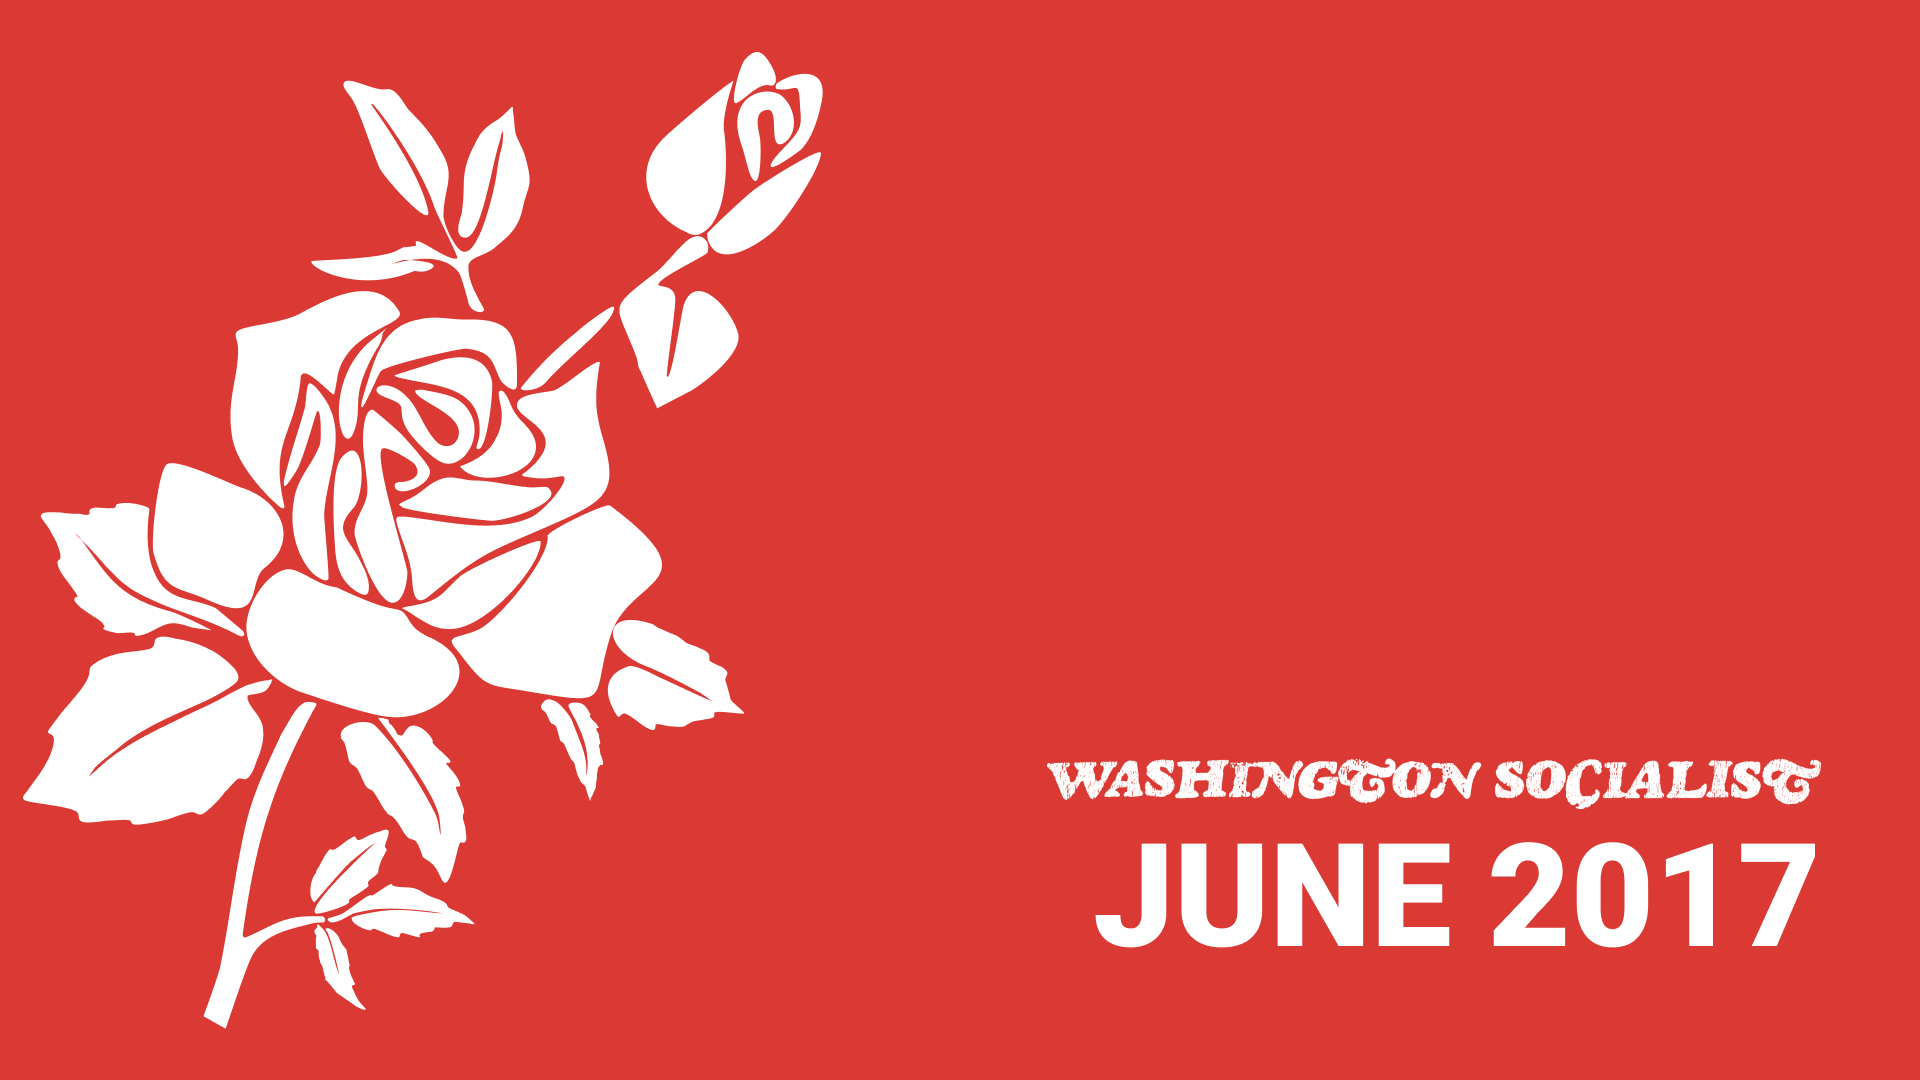 Washington Socialist Cover, June 2017